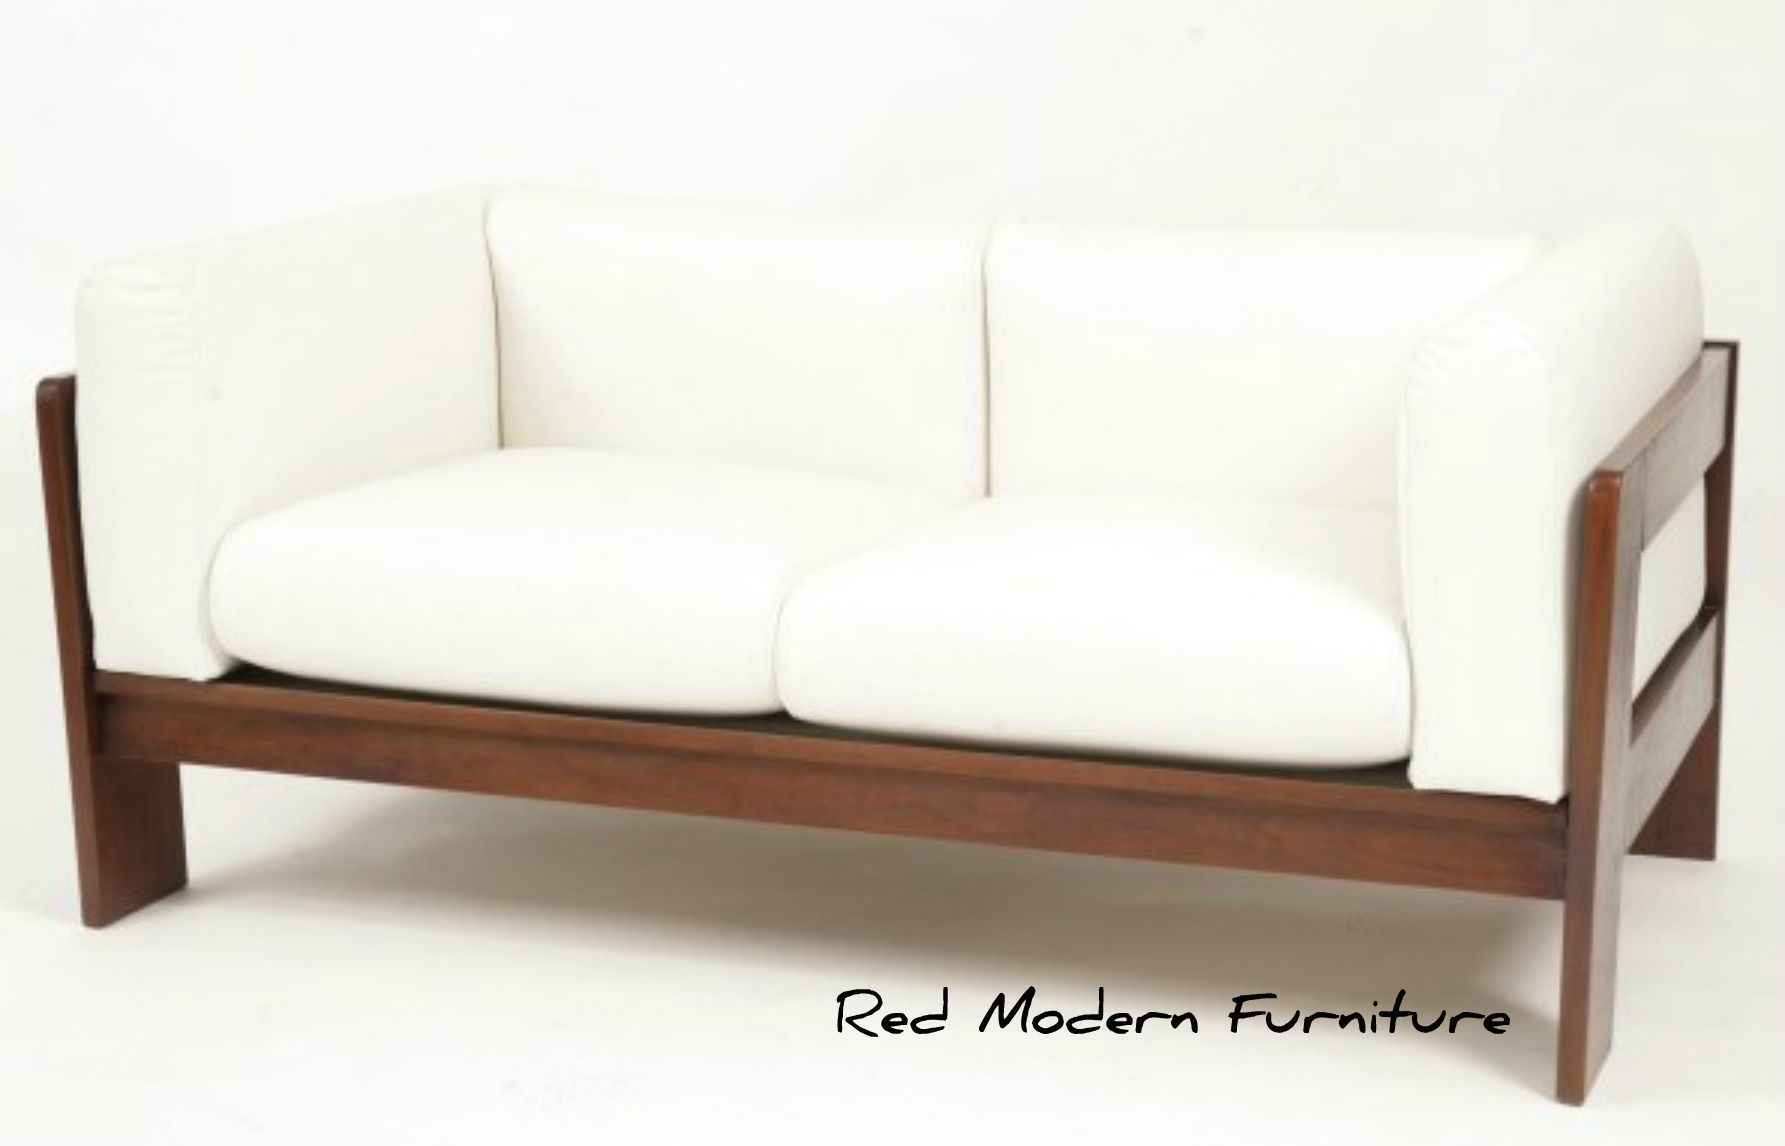 Wooden sofa plans - Sofa herbergt s werelds ...